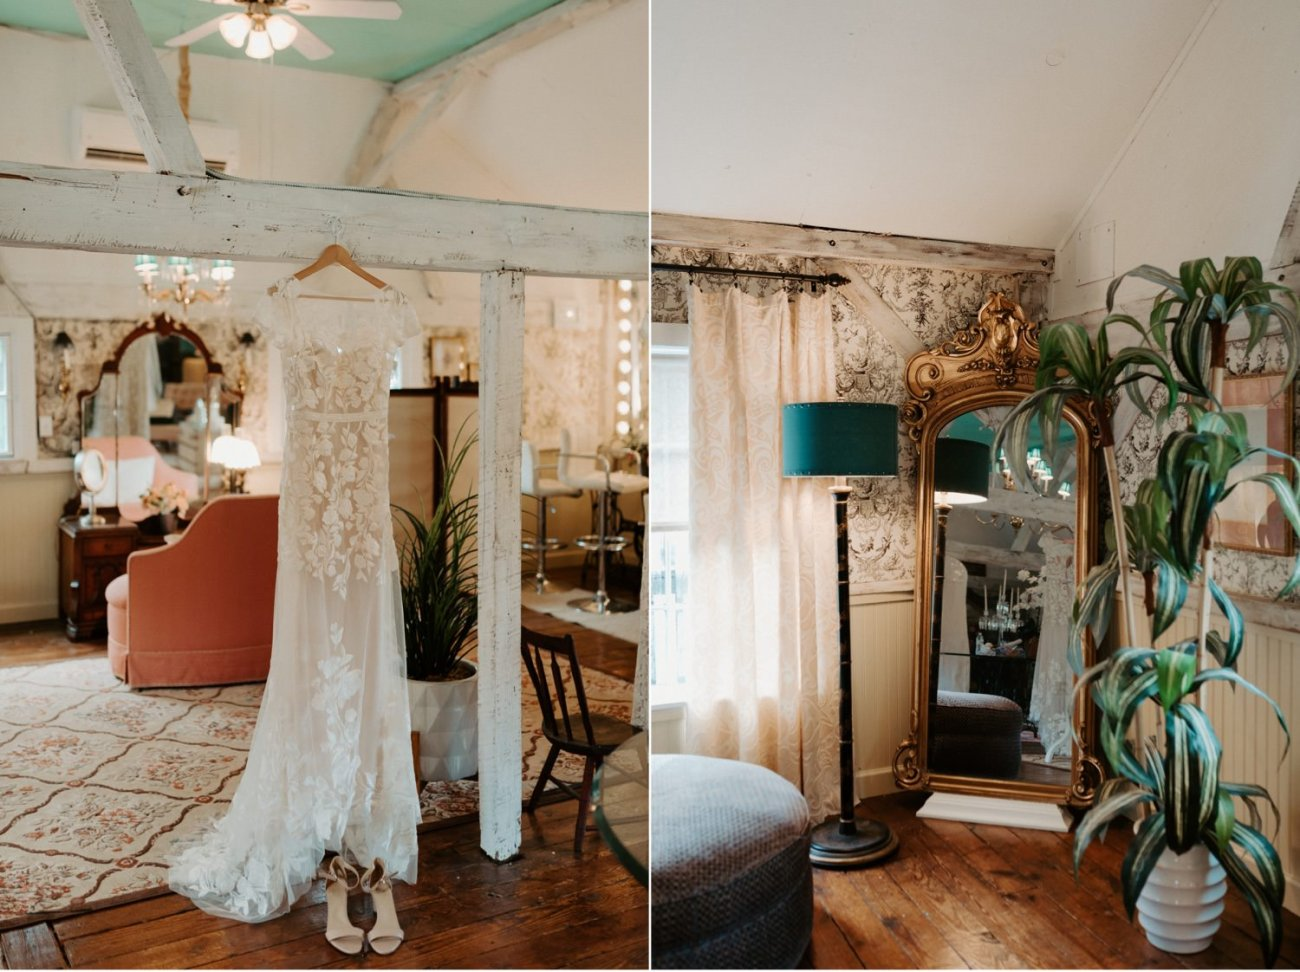 Wedding dress hanging in Bridal suite at Jacks Barn Oxford New Jersey. Jacks Barn Wedding New Jersey Wedding Photographer NJ Wedding Venue Rustic Barn Wedding Anais Possamai Photography 004